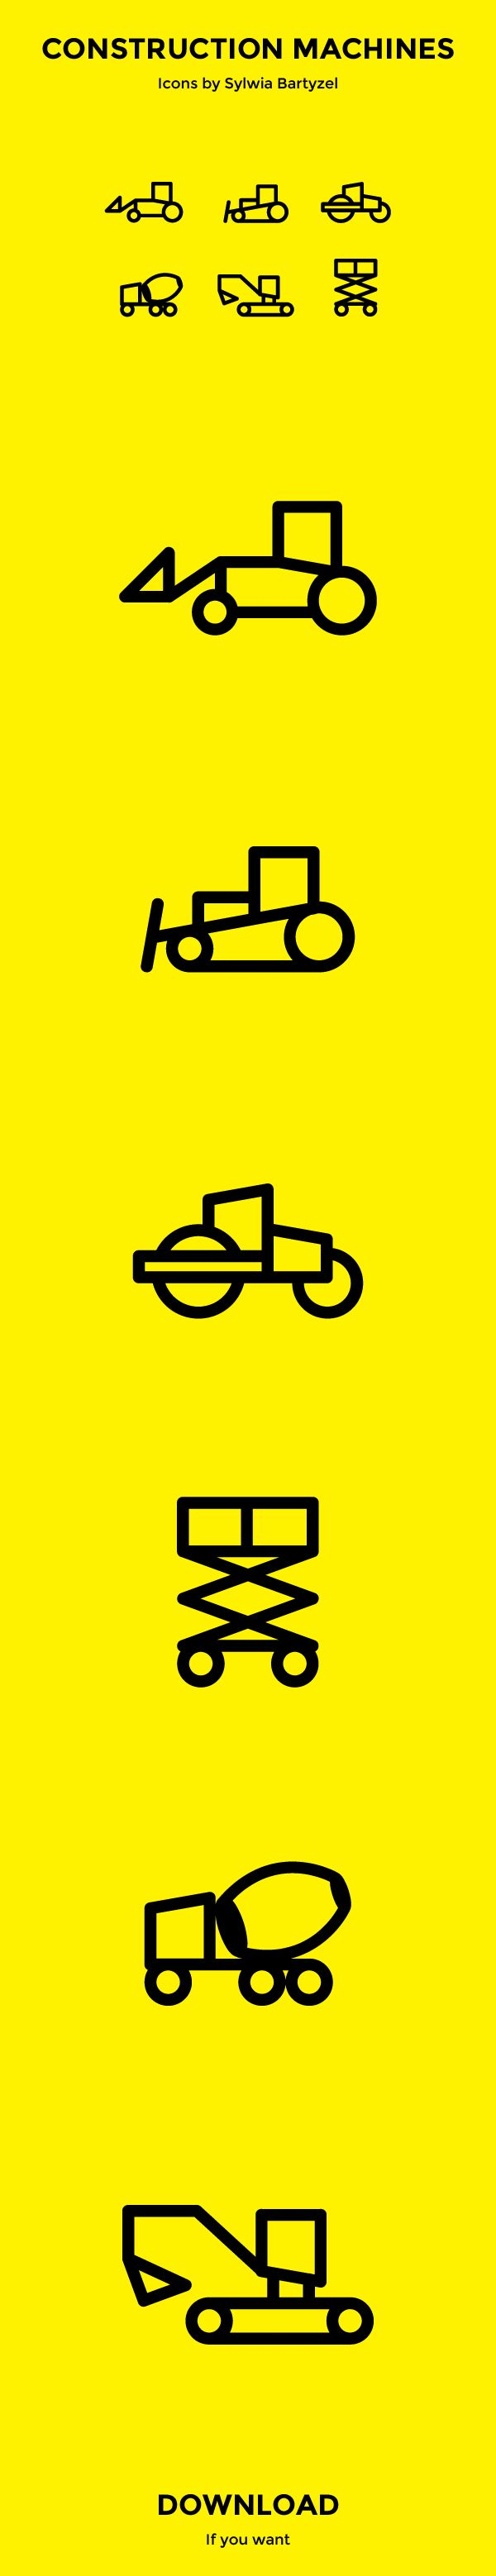 Construction Machines Icons on Behance